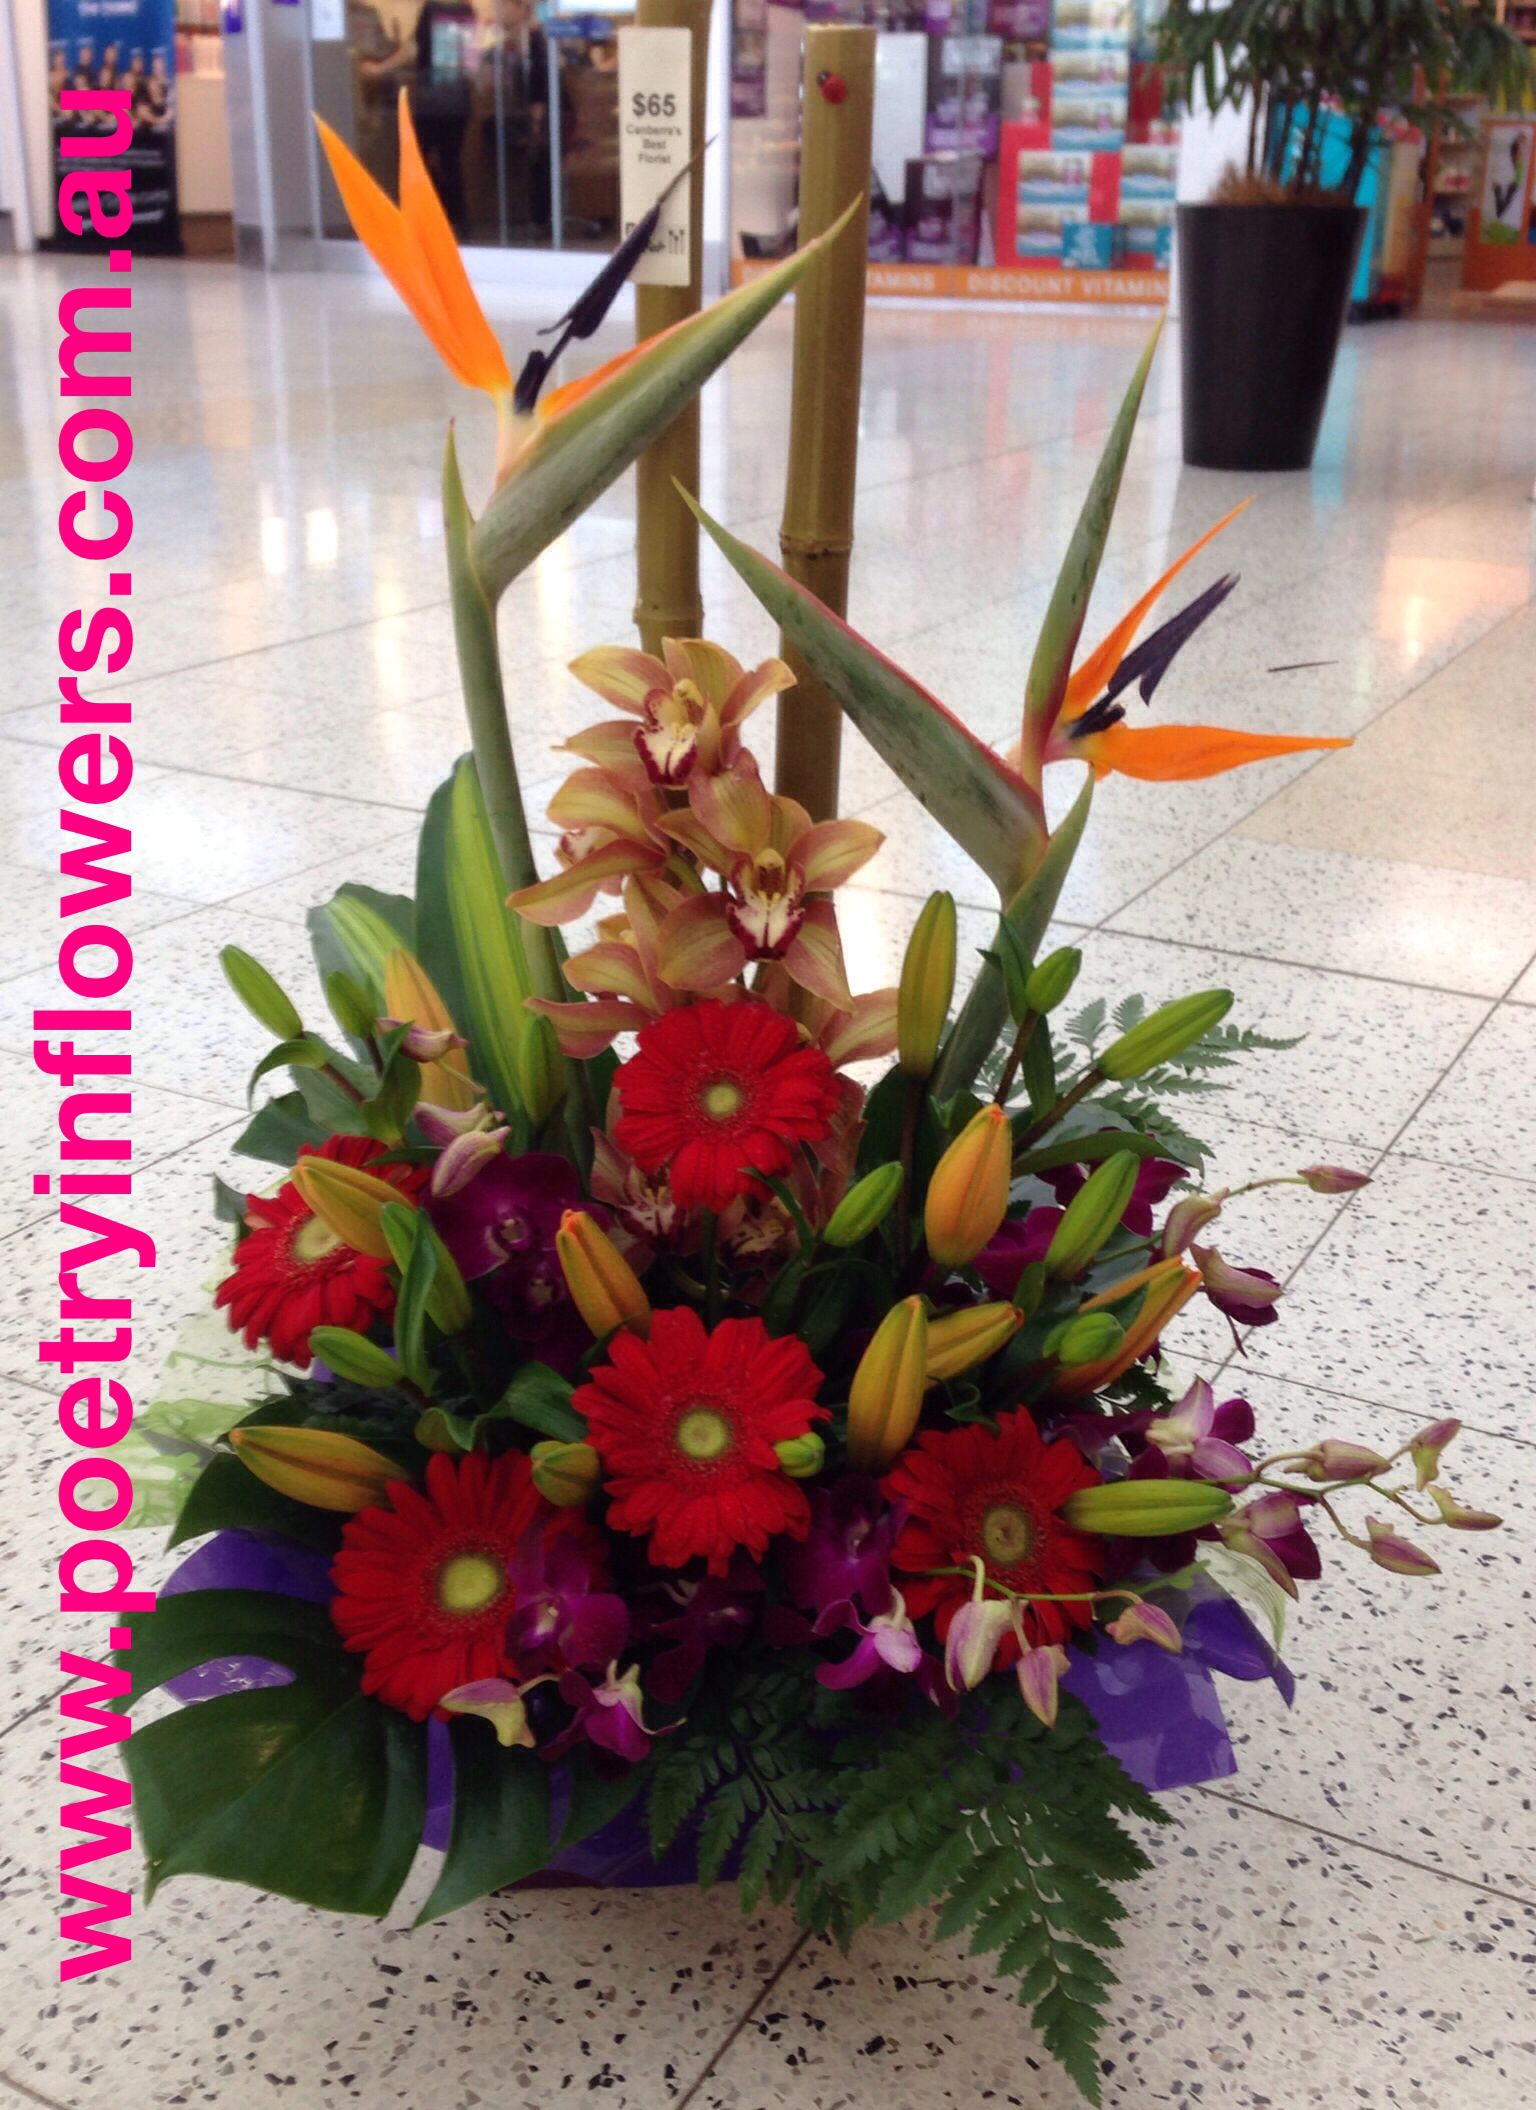 Poetryinflowers Tropical Floral Designs 2015 Part 2